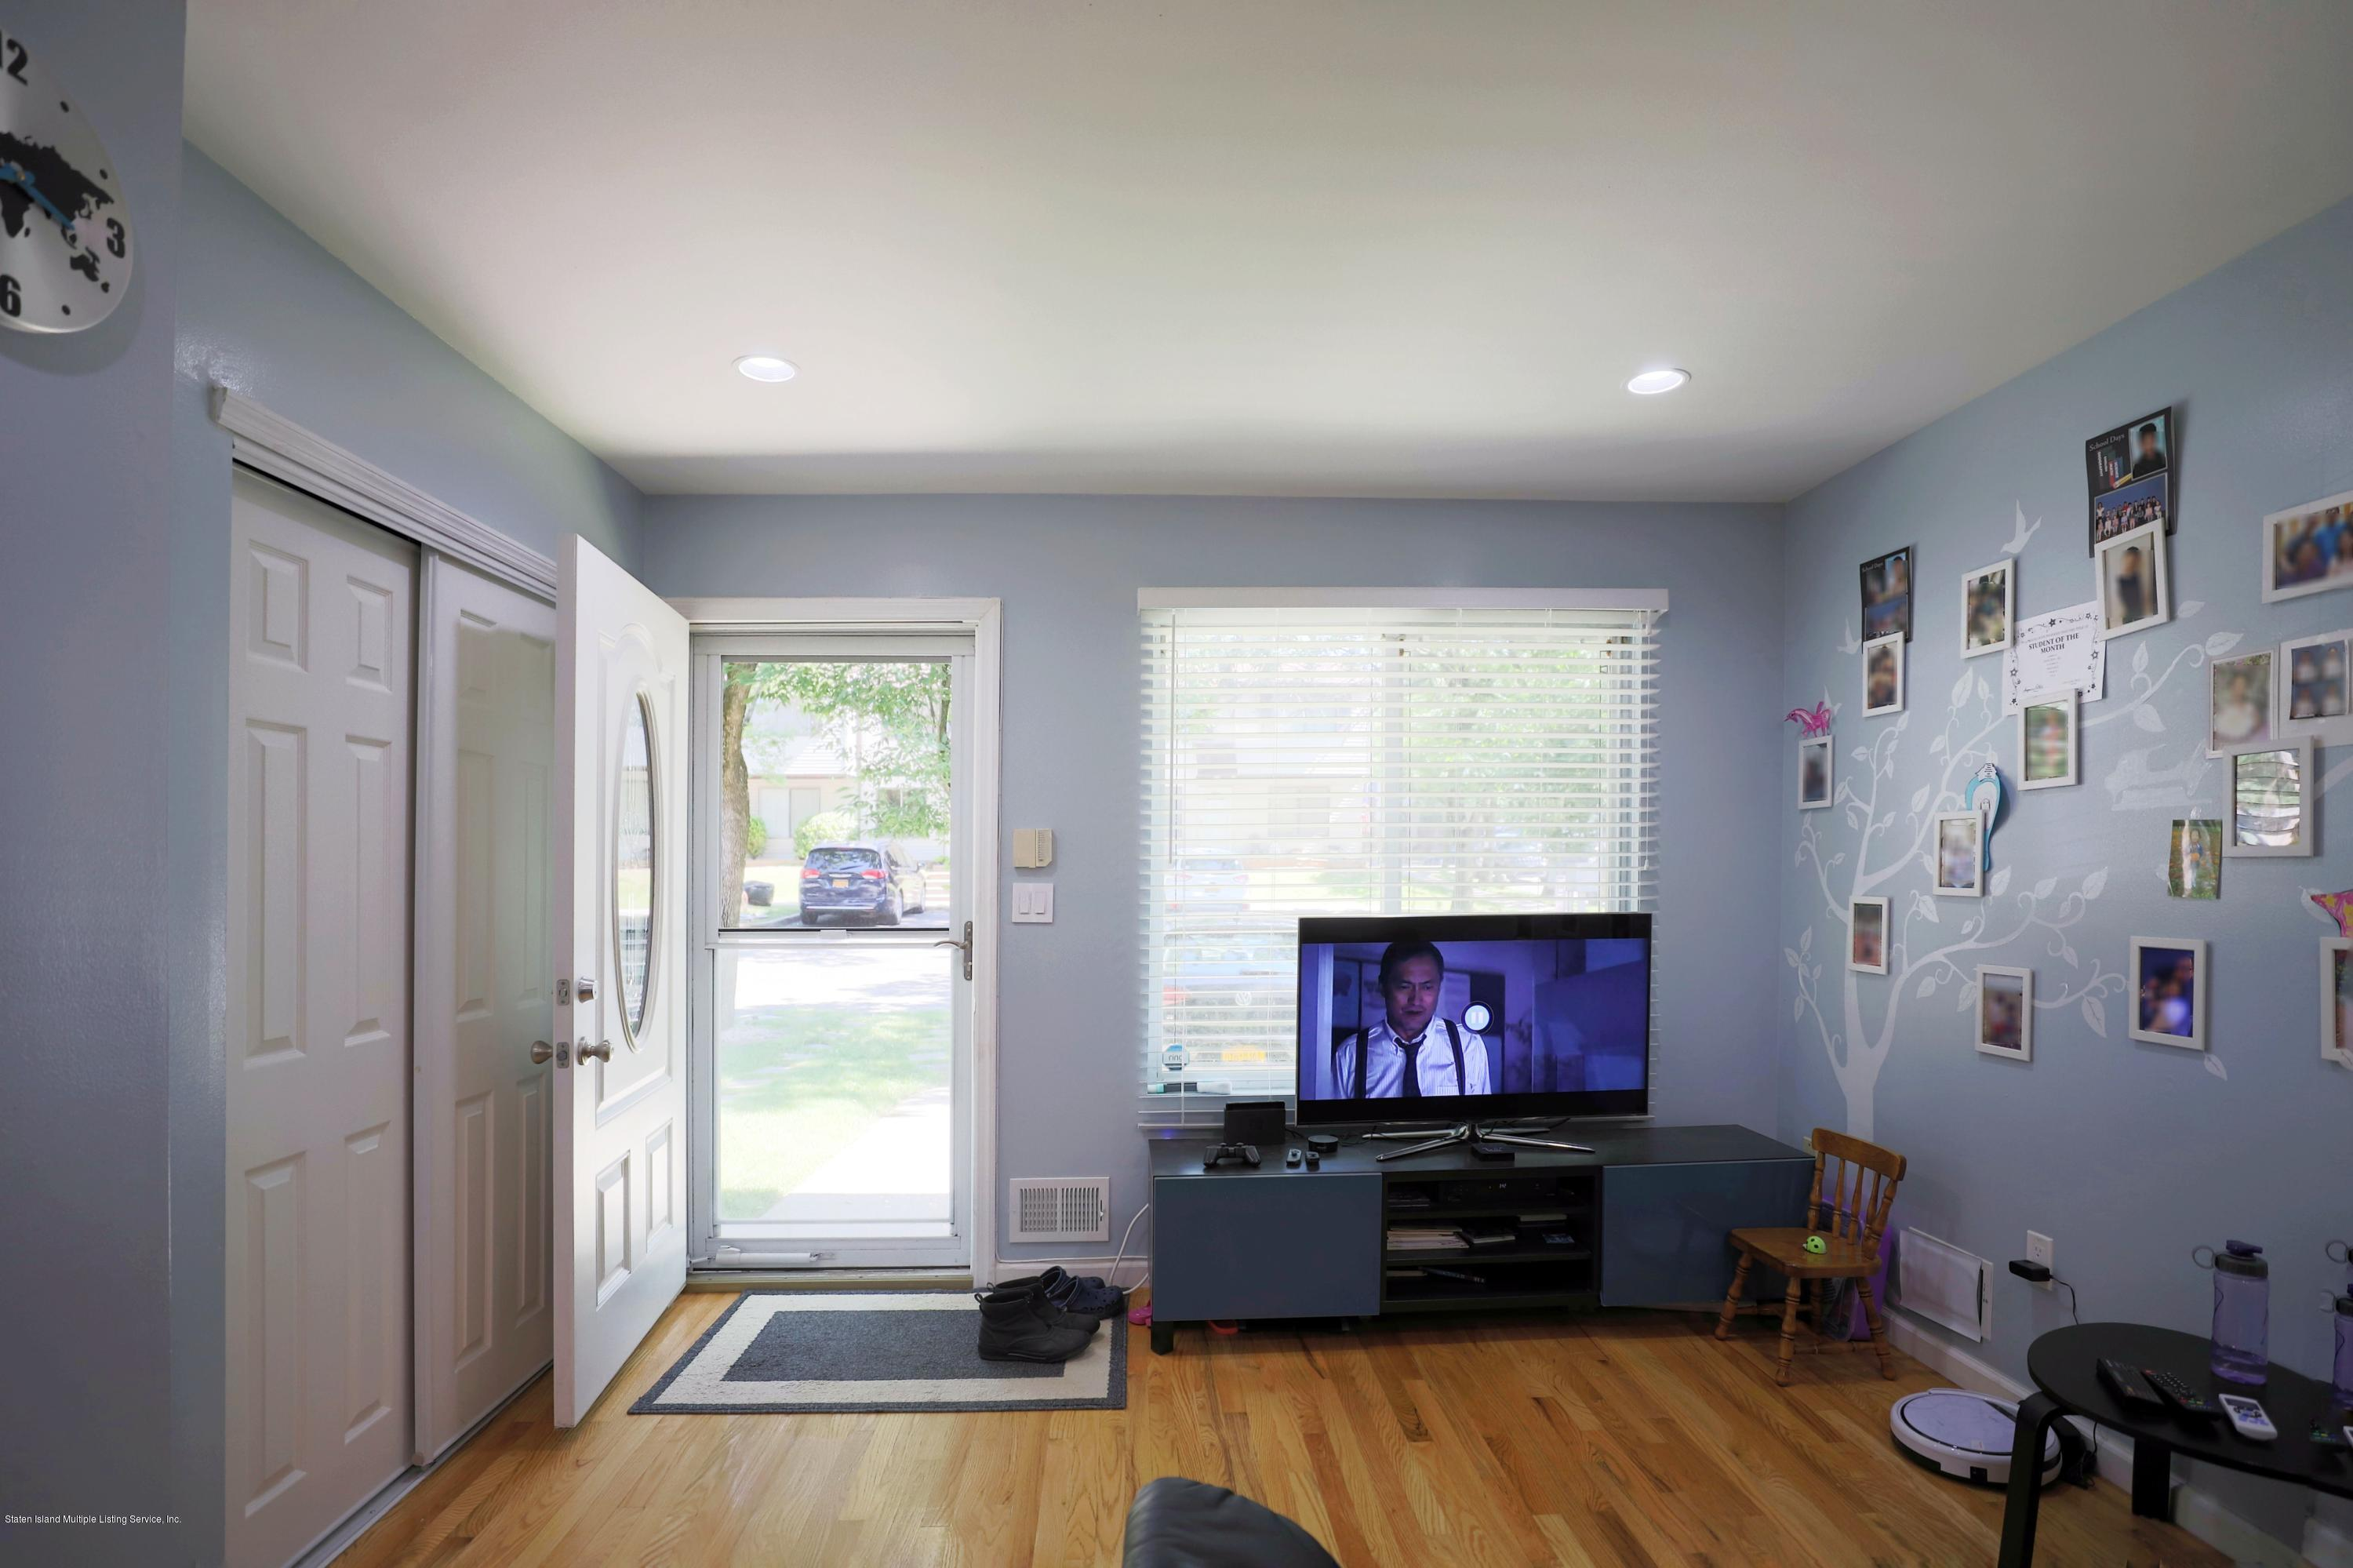 Single Family - Attached 16 Country Lane  Staten Island, NY 10312, MLS-1129780-11